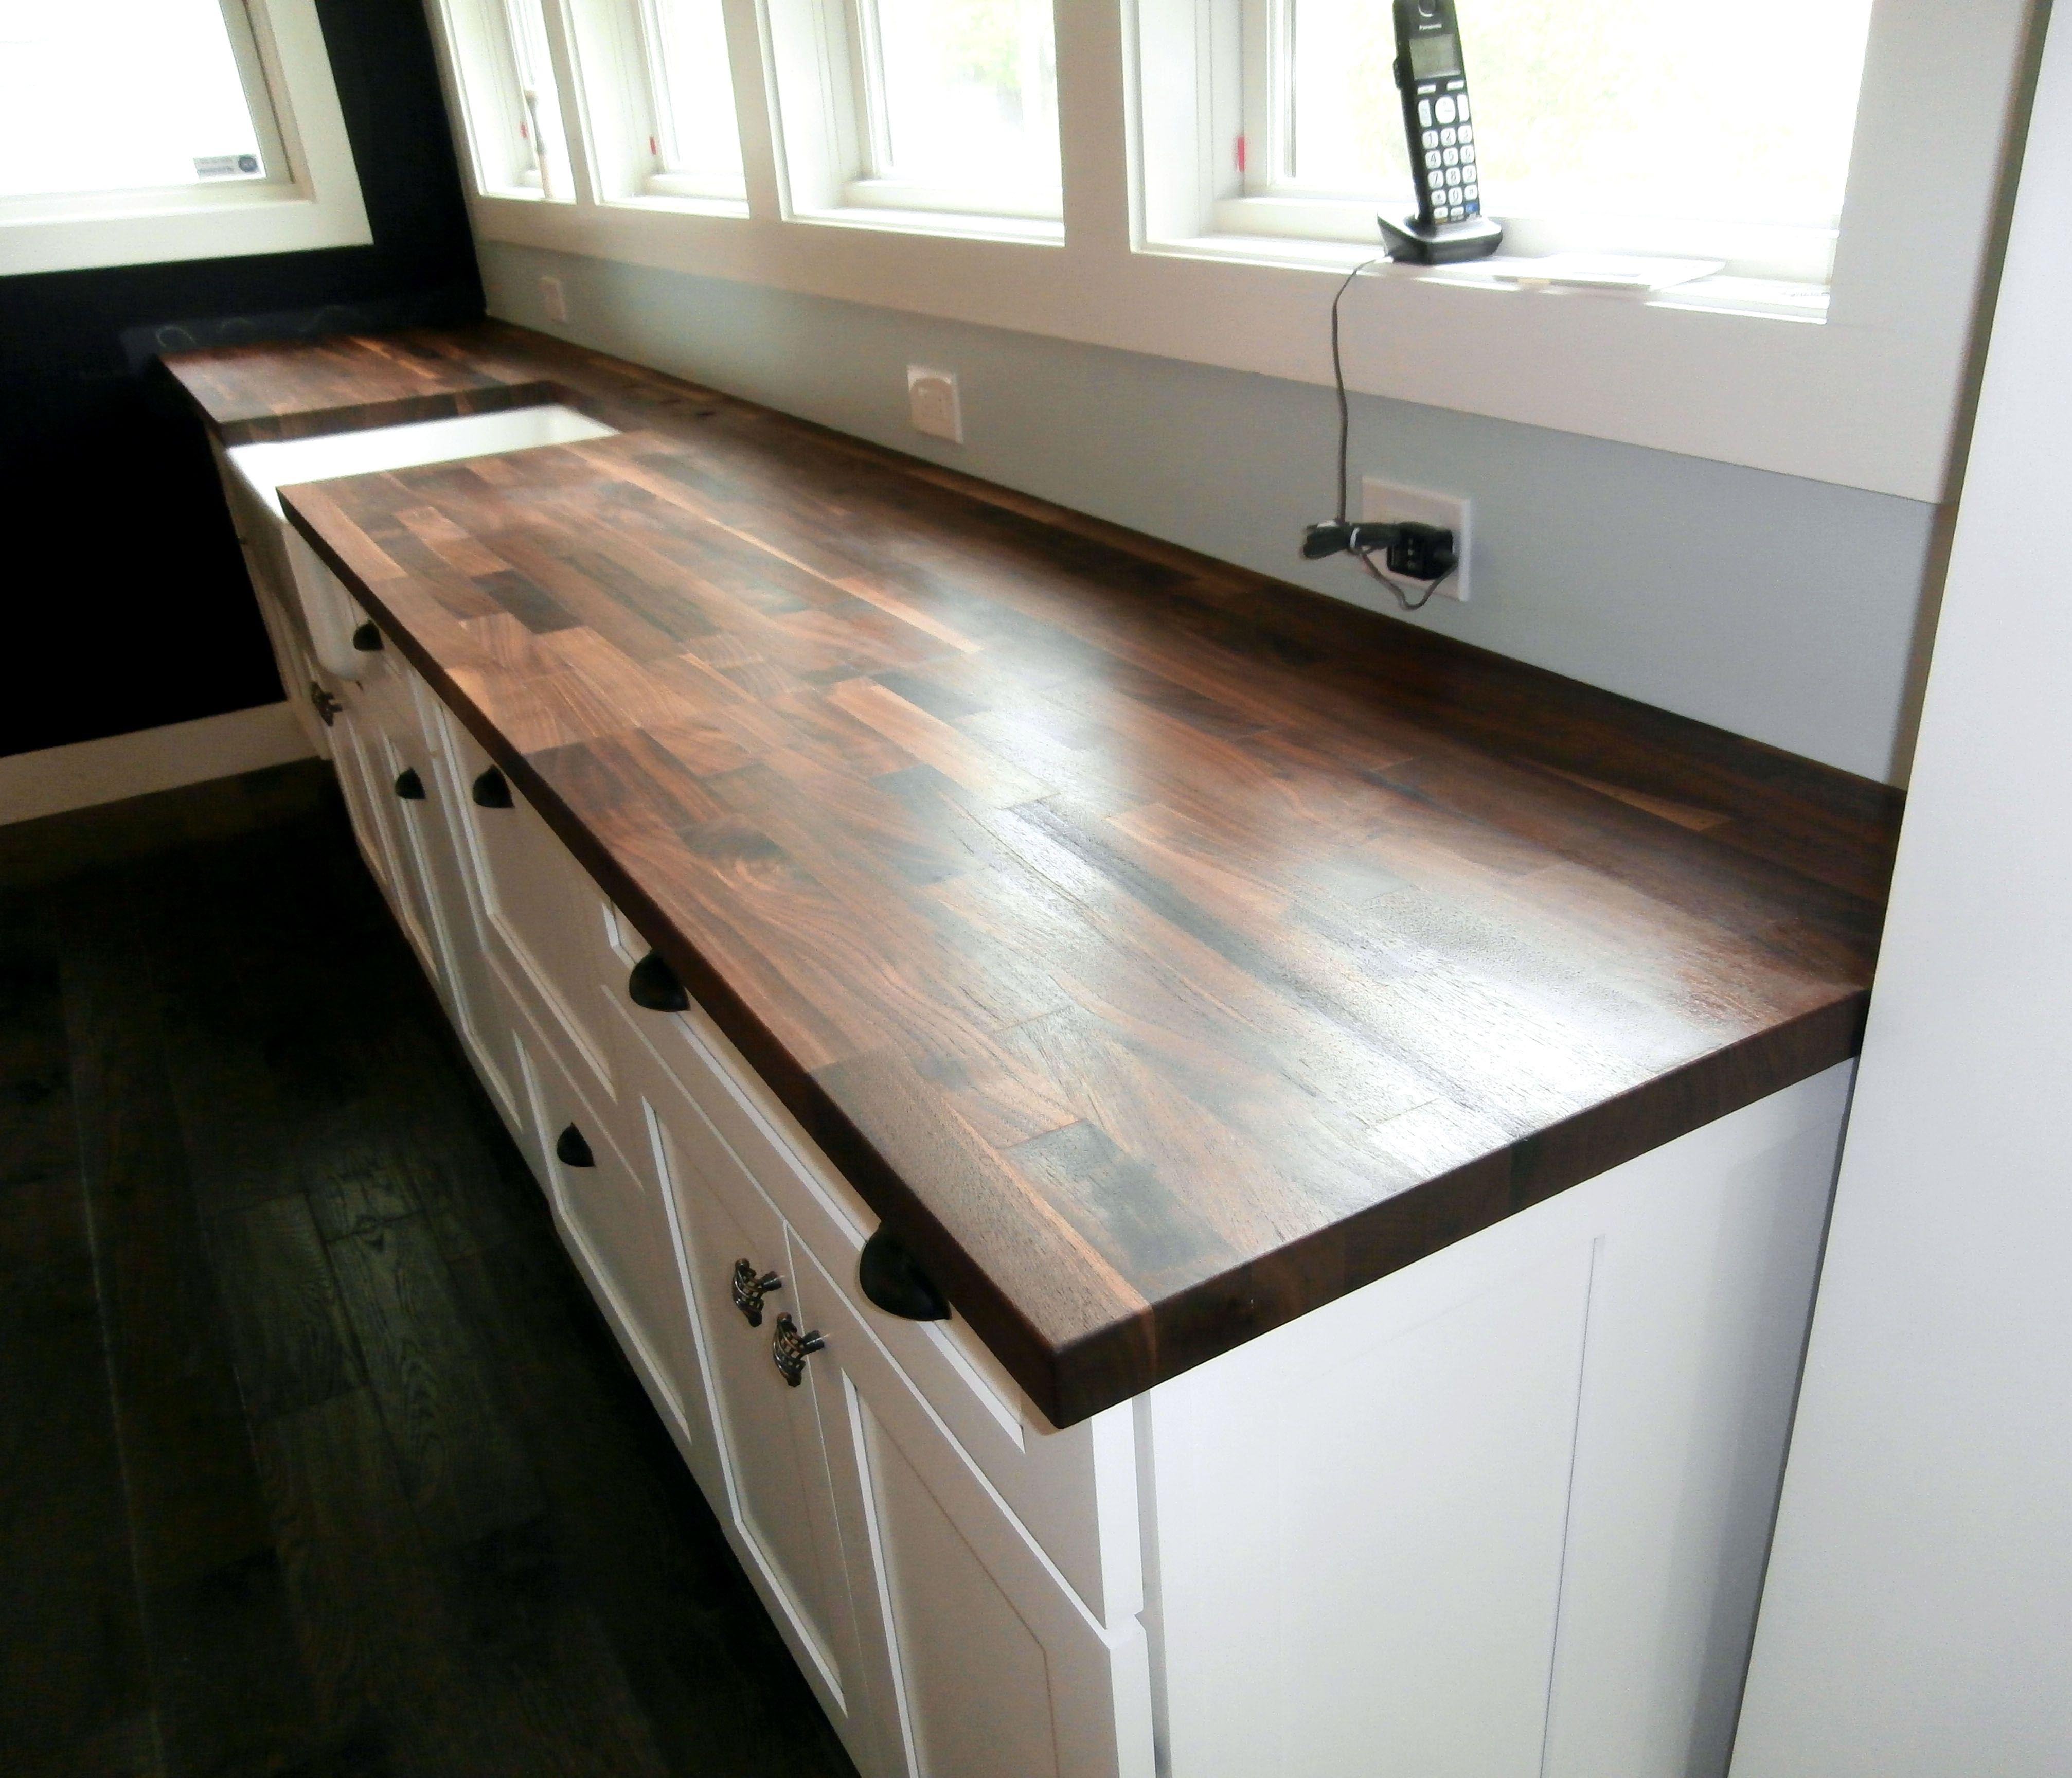 Walnut Eco Pro Countertop Designed By And Made For Millbrook Cabinetry And Design In Millbrook Ny This Product Countertop Design Eco Kitchen Wood Countertops